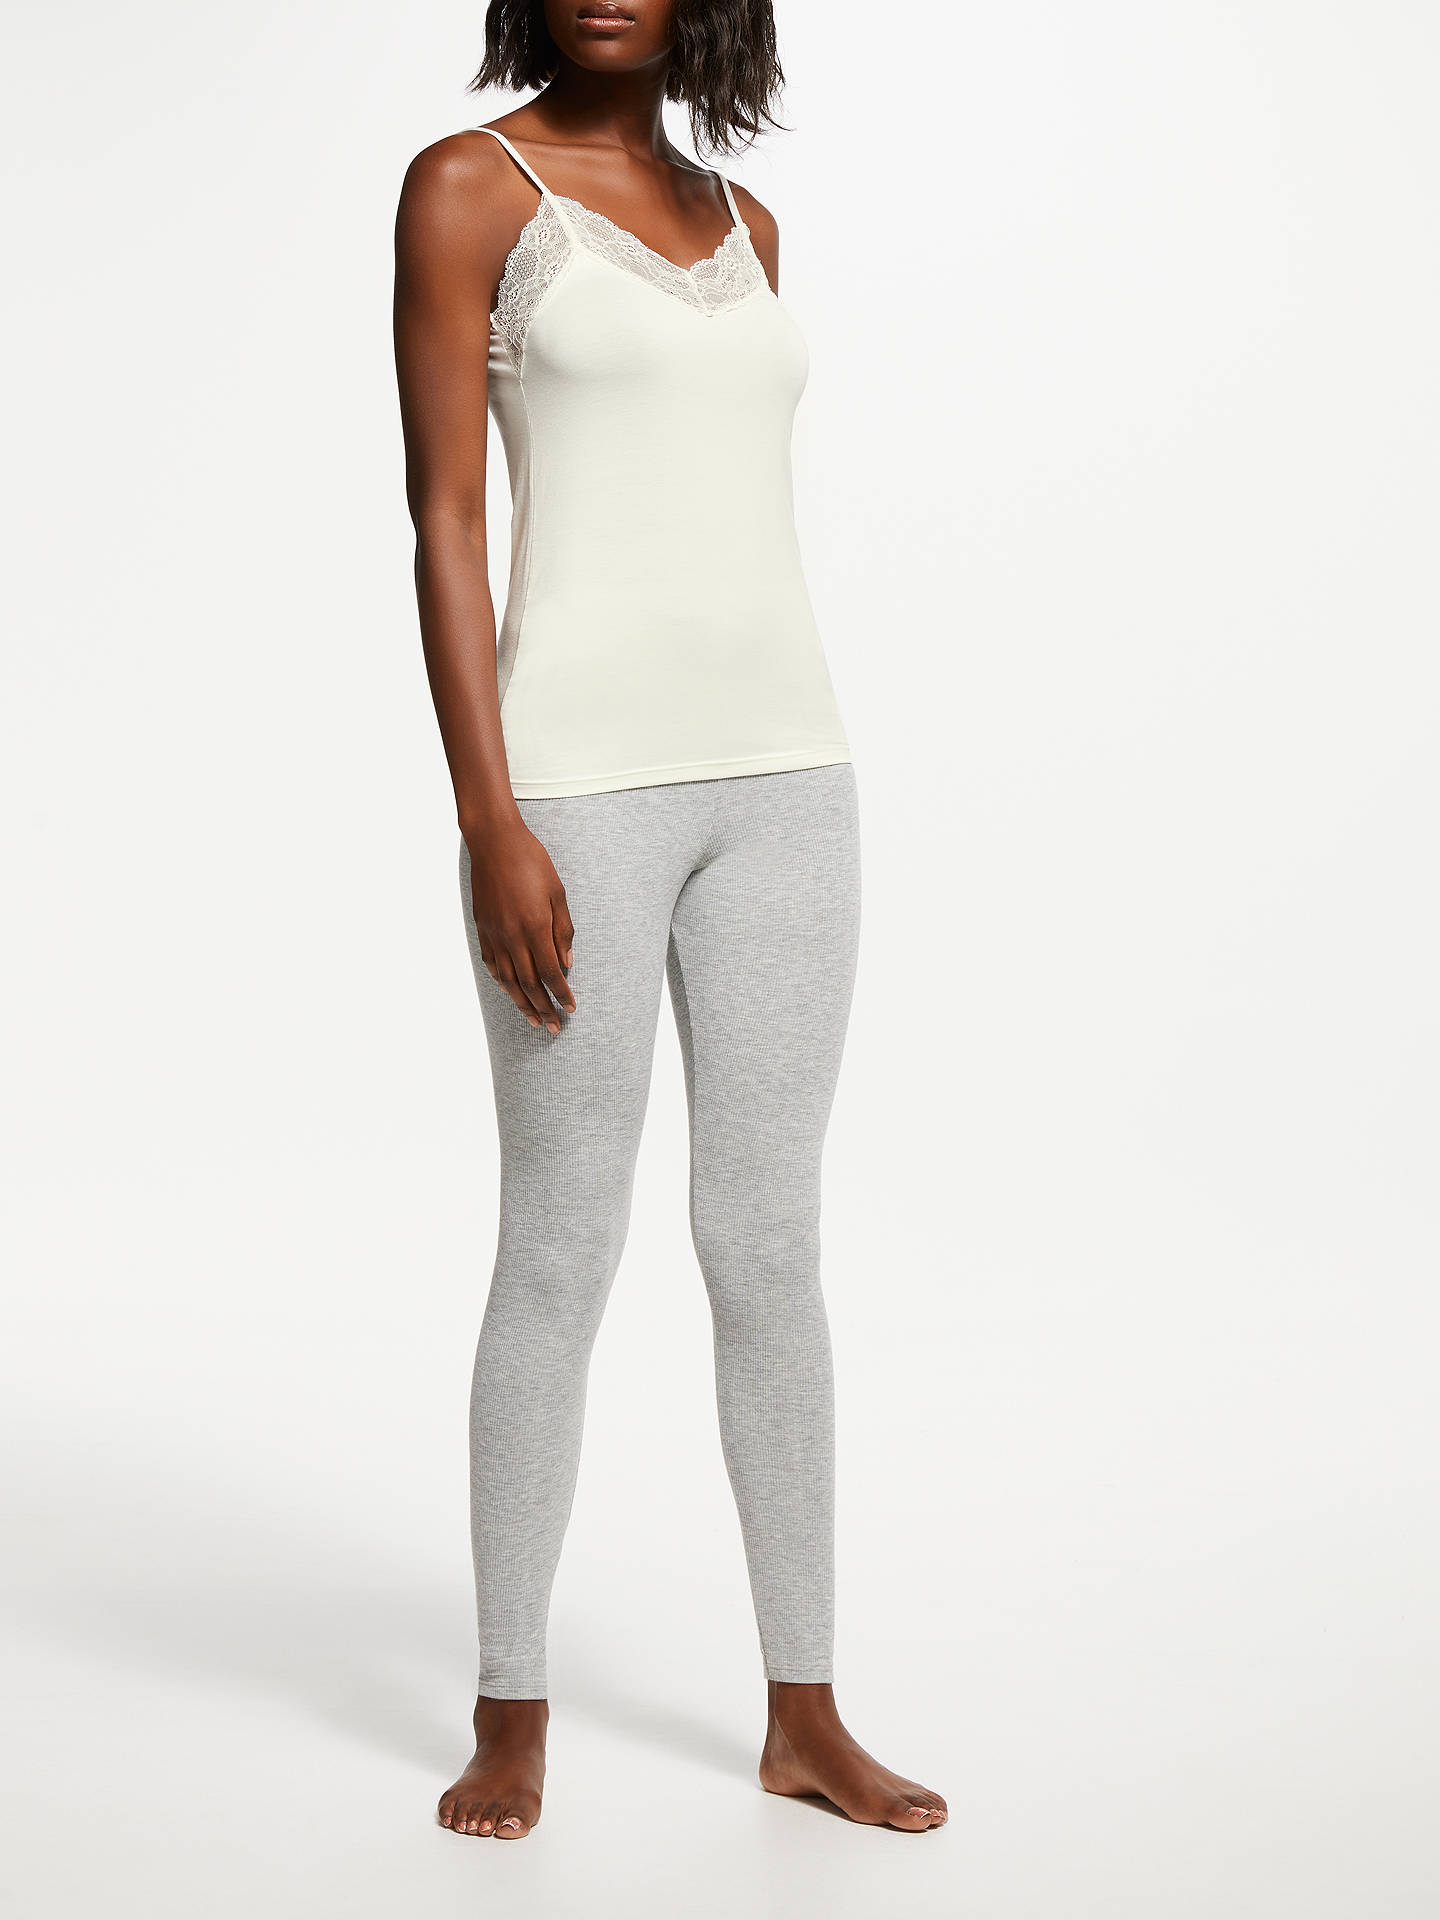 BuyJohn Lewis & Partners Heat Generating Lace Trim Thermal Vest, Ivory, 8-10 Online at johnlewis.com